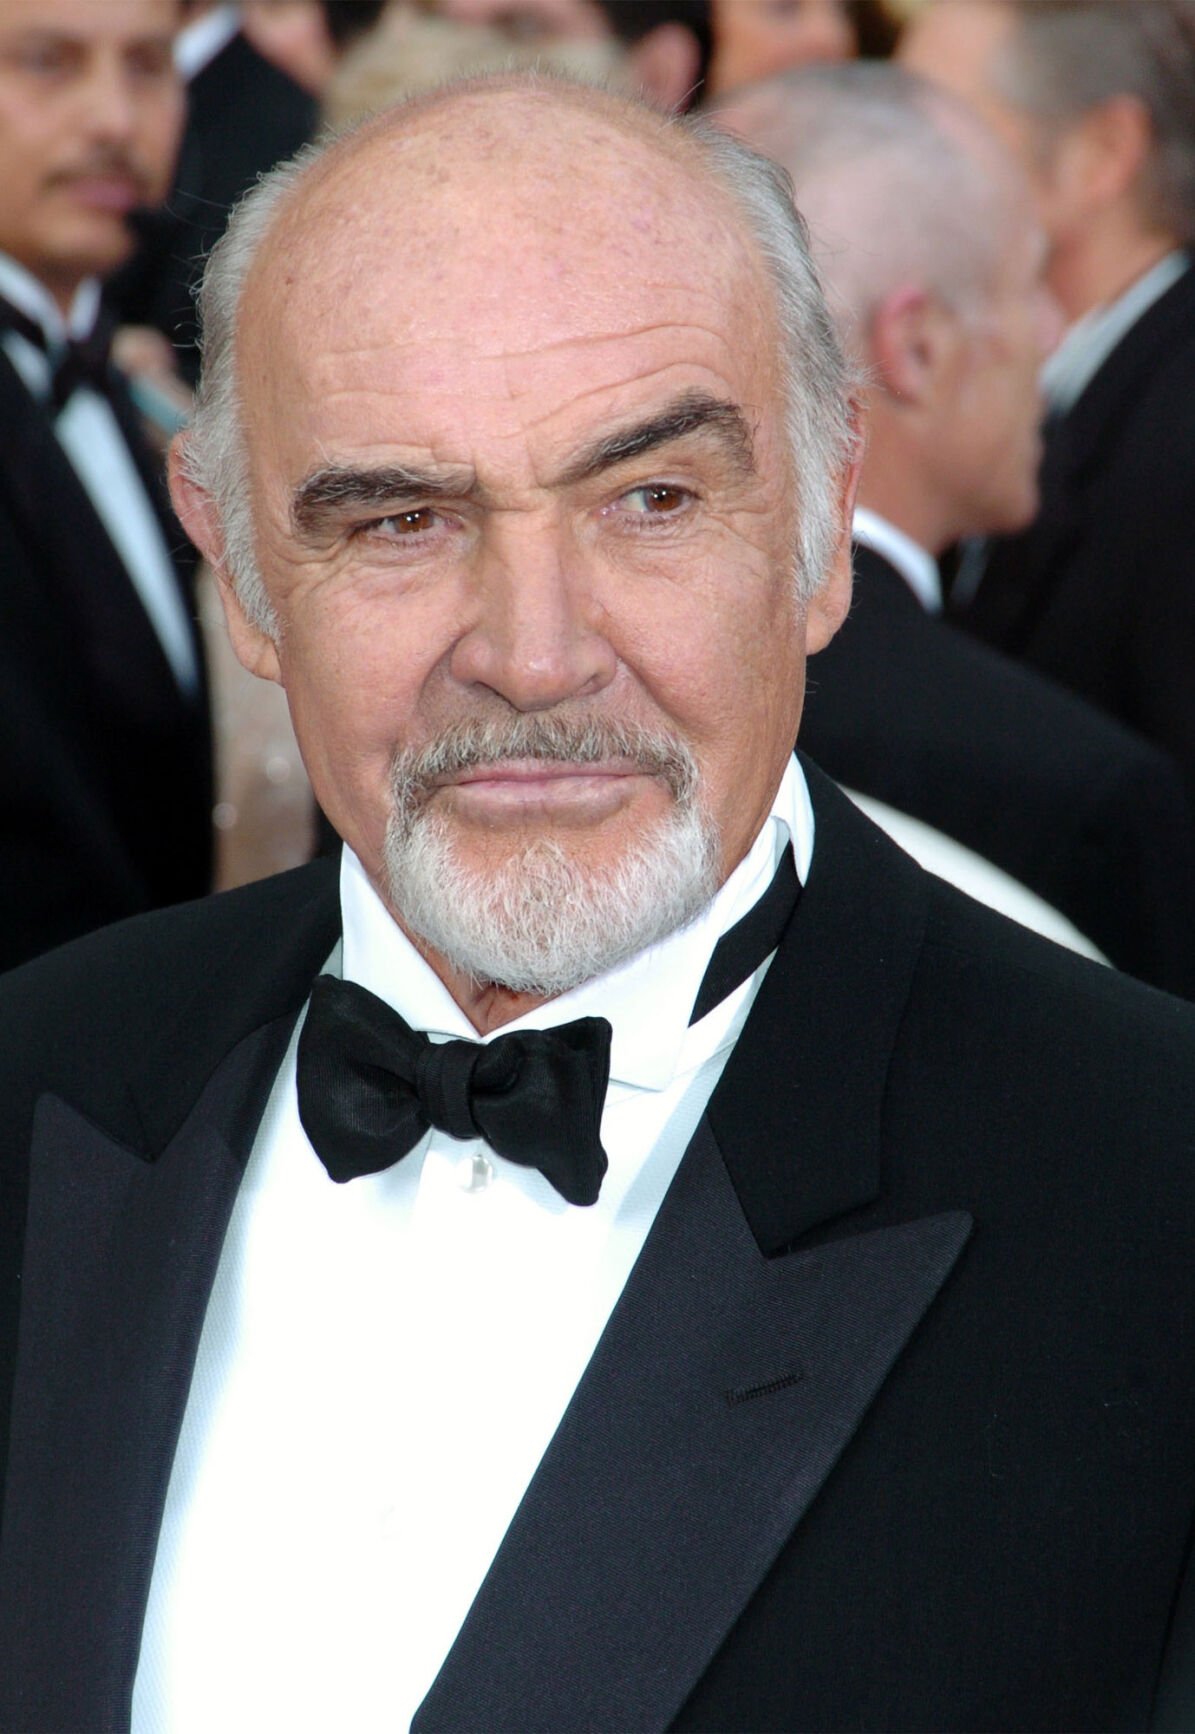 US-NEWS-CONNERY-OBIT-1-ABA